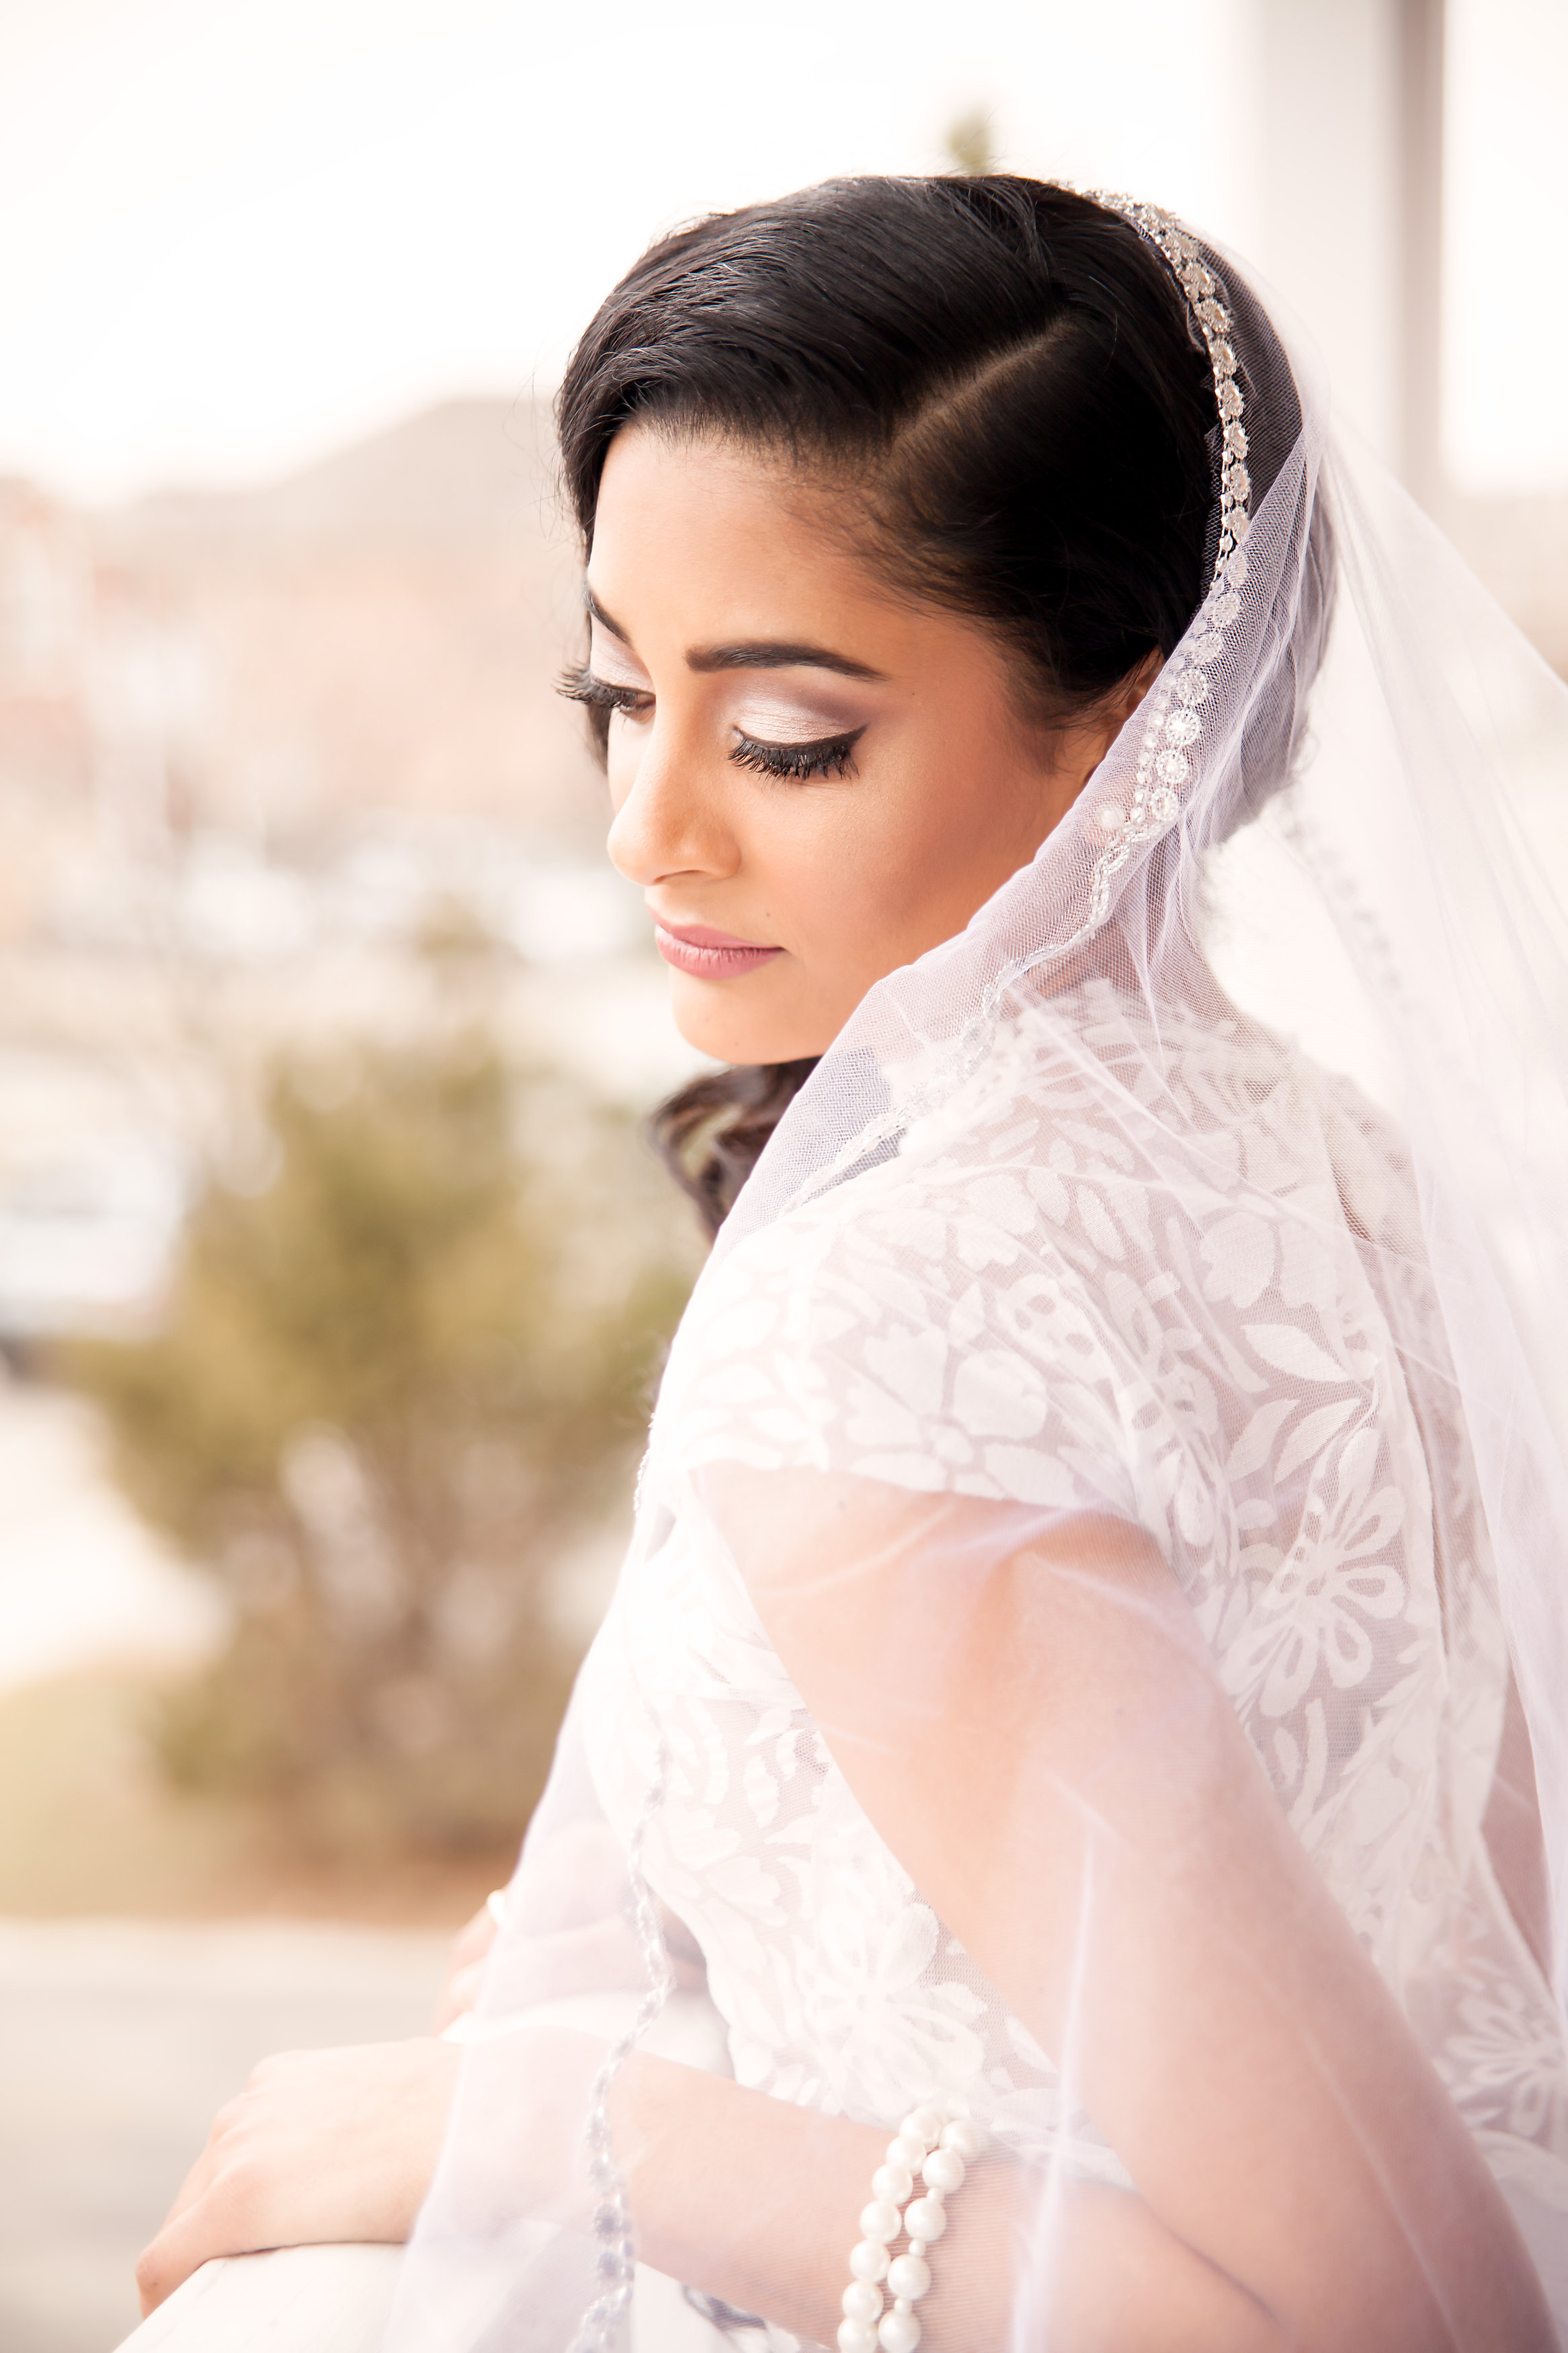 Beauty by Sacha Bride - Shalini